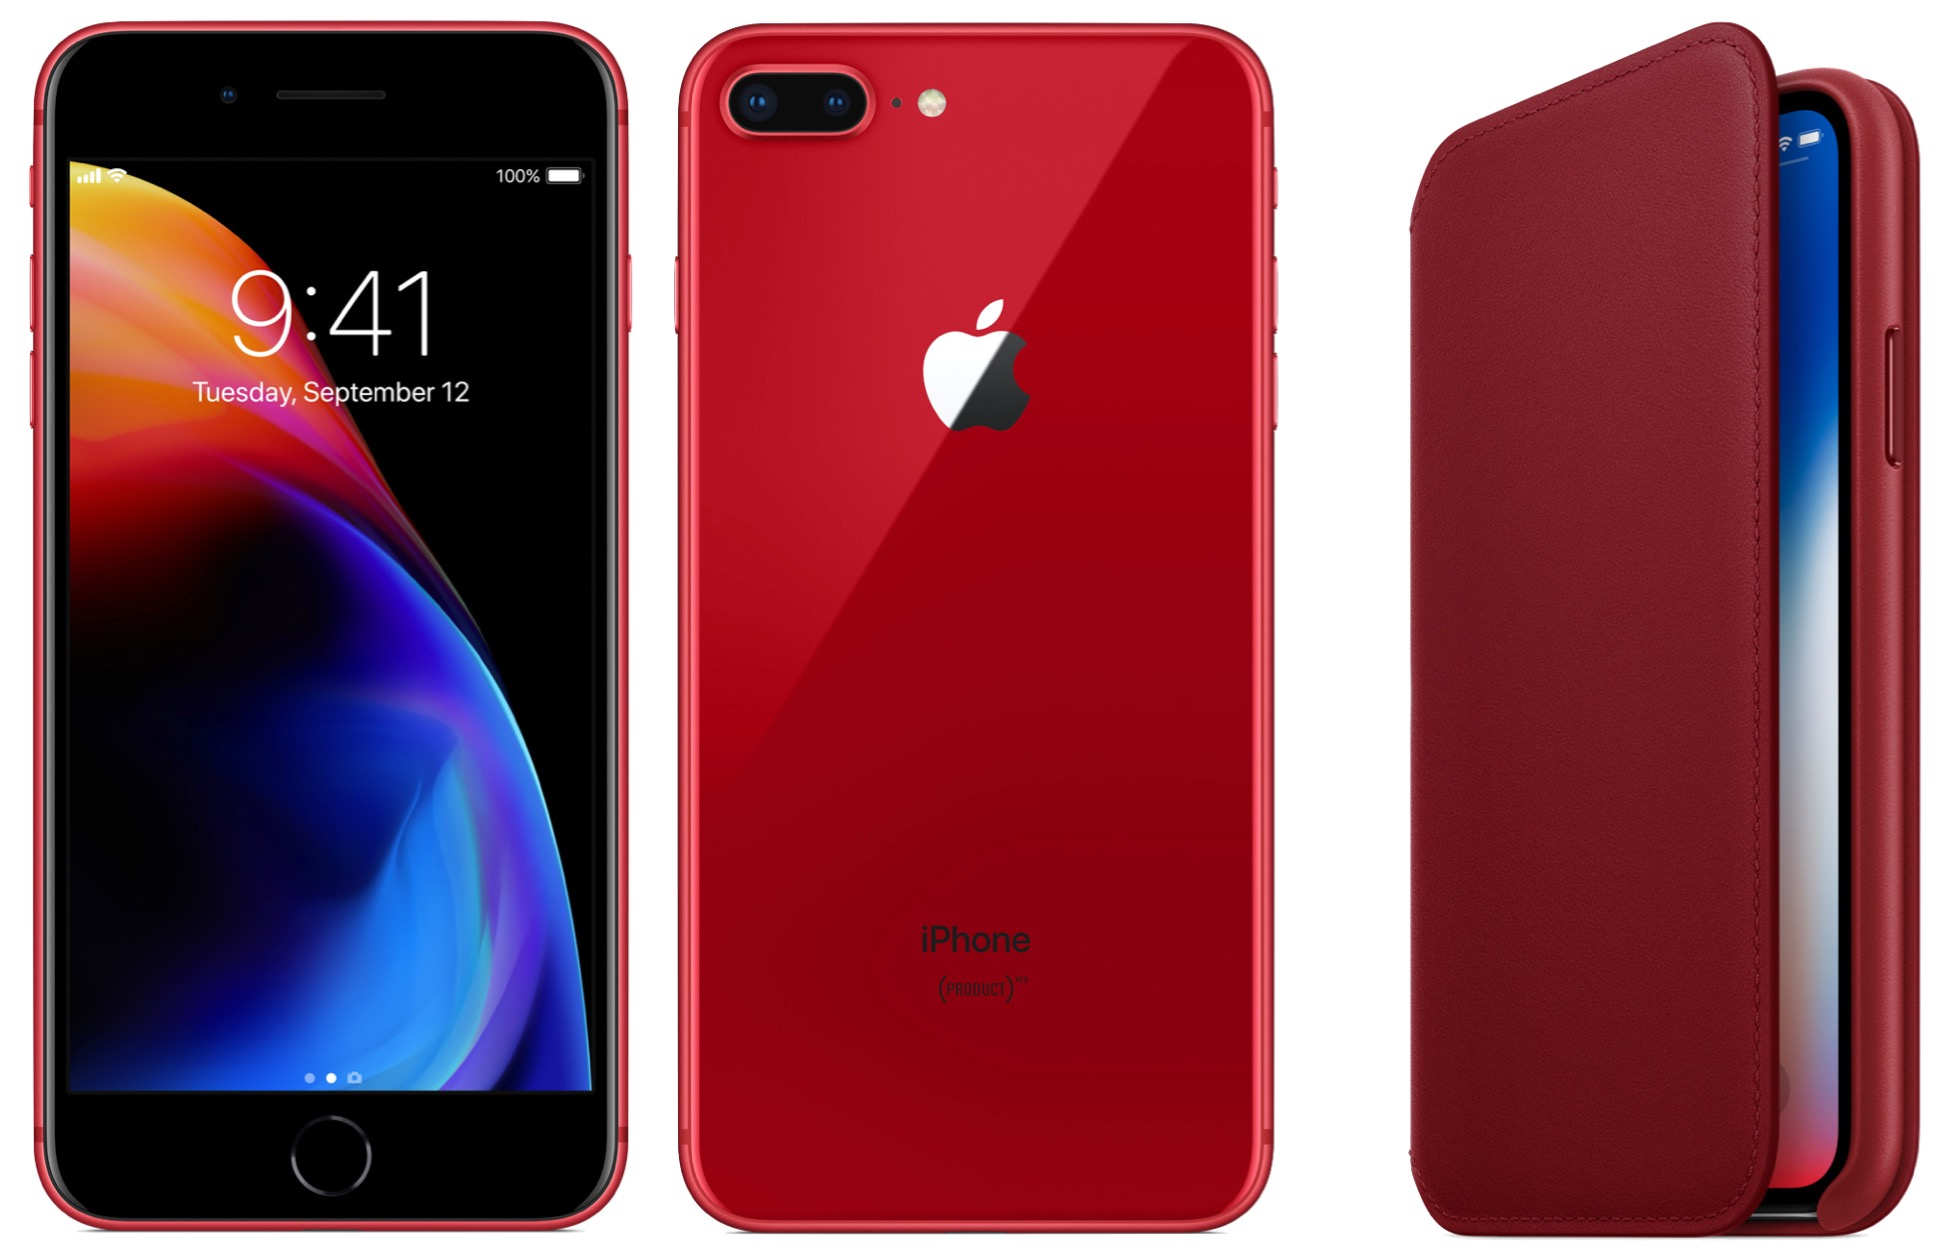 34c1679889d3dc Apple introduces iPhone 8 and iPhone 8 Plus (PRODUCT)RED Special ...